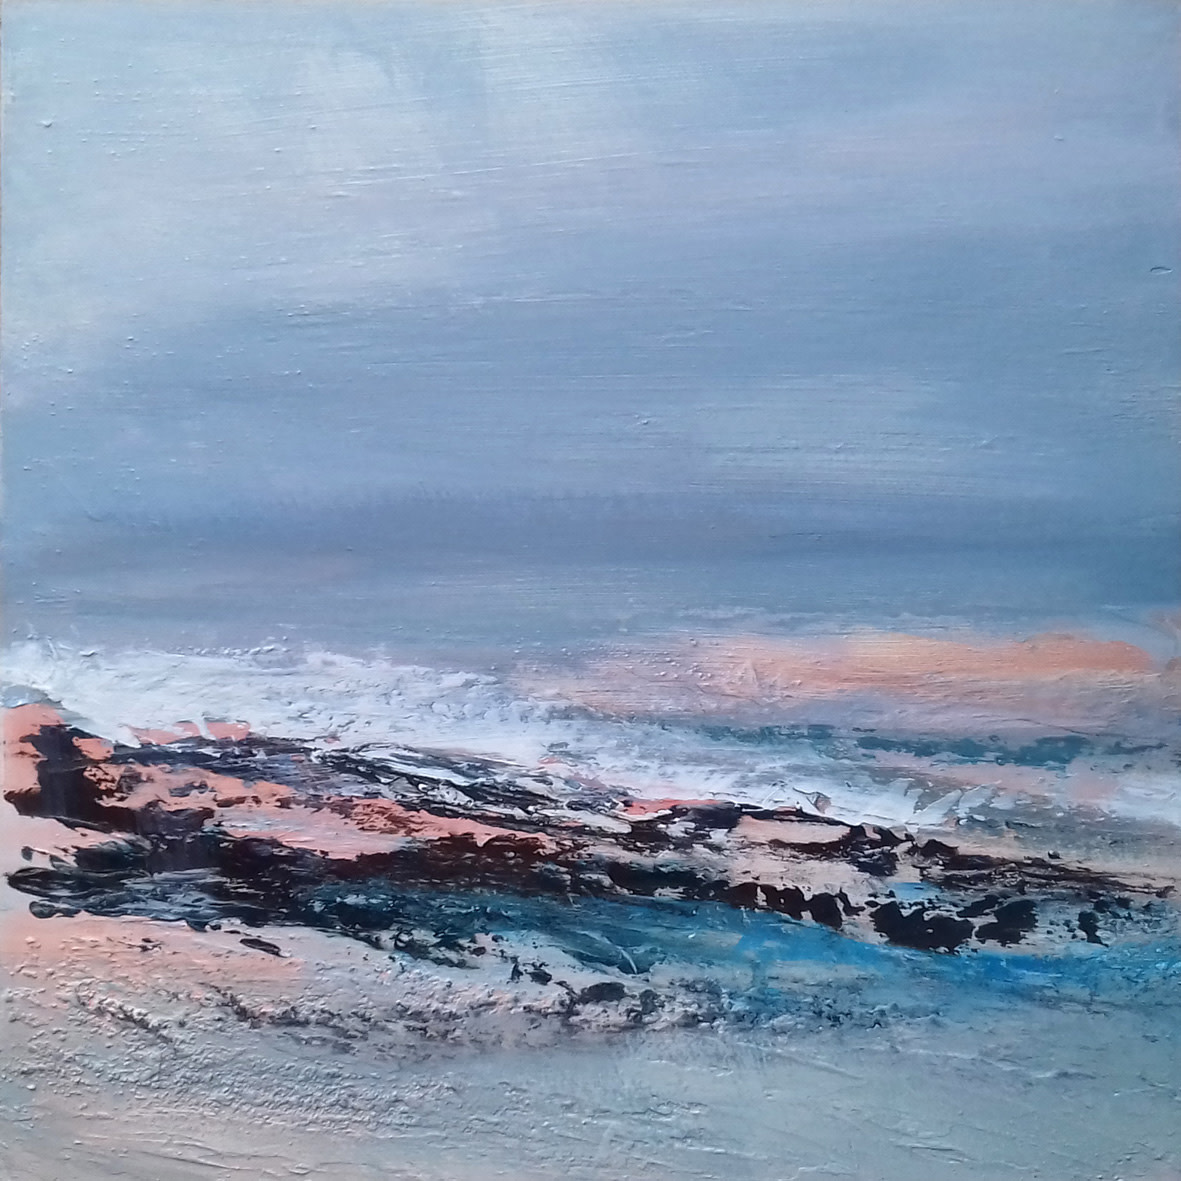 """<span class=""""link fancybox-details-link""""><a href=""""/artists/66-joanne-last/works/6359-joanne-last-sea-interlude-4-2019/"""">View Detail Page</a></span><div class=""""artist""""><strong>Joanne Last</strong></div> <div class=""""title""""><em>Sea Interlude 4</em>, 2019</div> <div class=""""signed_and_dated"""">Signed and dated on the reverse</div> <div class=""""medium"""">Acrylic on board</div> <div class=""""dimensions"""">40 x 40cm</div><div class=""""price"""">£450.00</div><div class=""""copyright_line"""">Own Art £45 x 10 months, 0% APR</div>"""